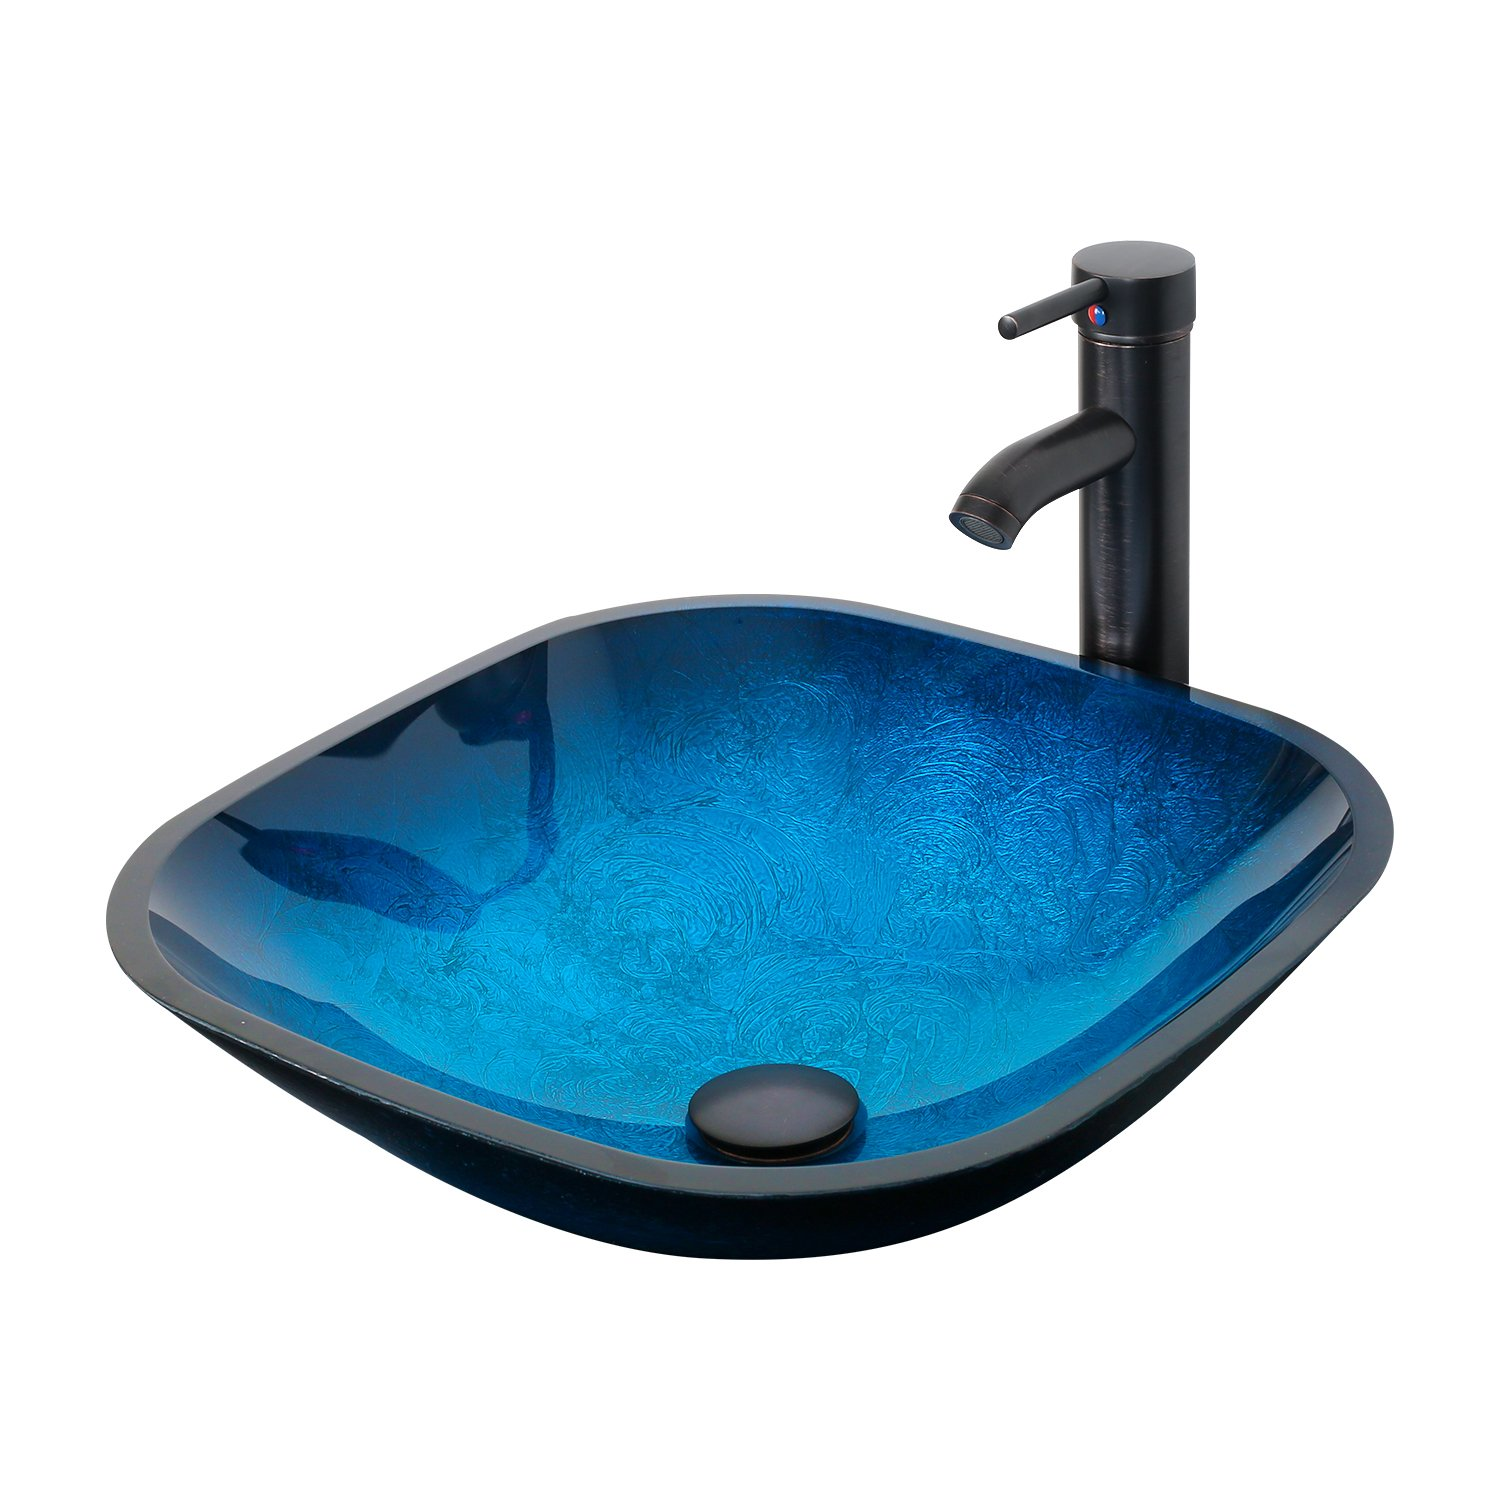 Eclife Ocean Blue Square Bathroom Sink Artistic Tempered Glass Vessel Sink Combo with Oil Rubber Bronze Faucet and Pop up drain Bathroom Bowl A04